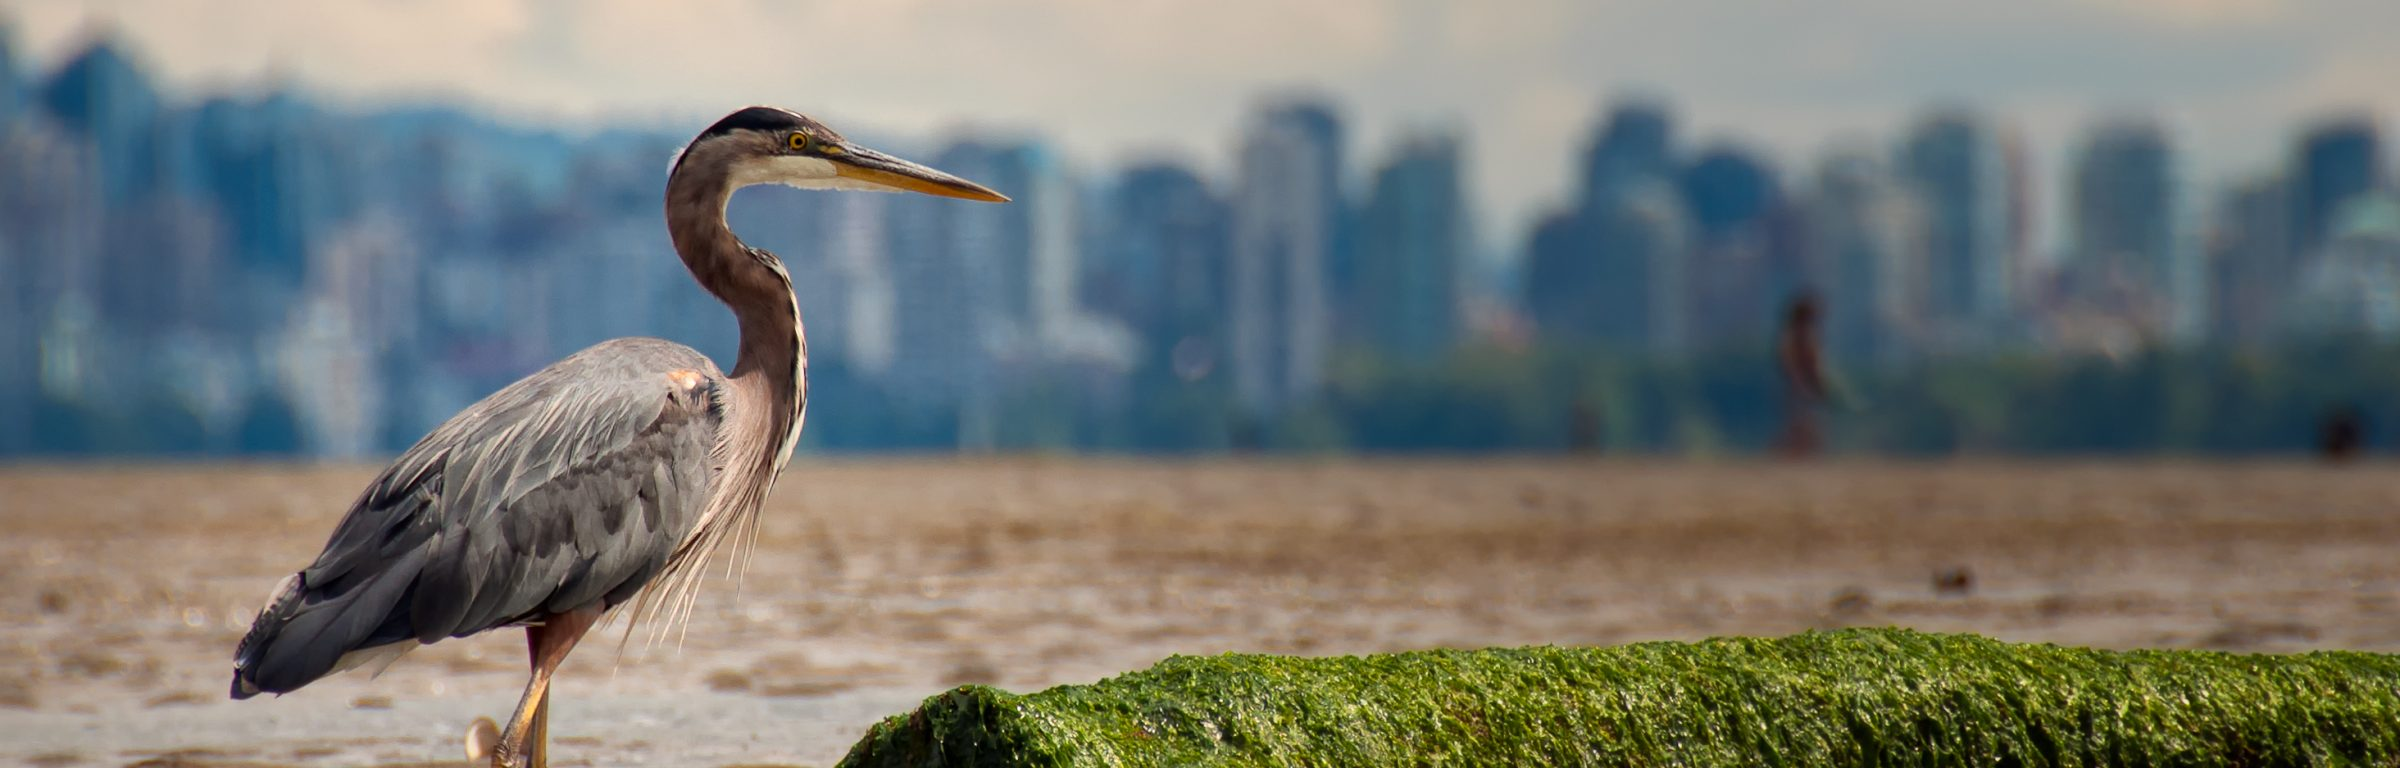 Heron standing profile view with log while fishing and Vancouver skyline in the distance.